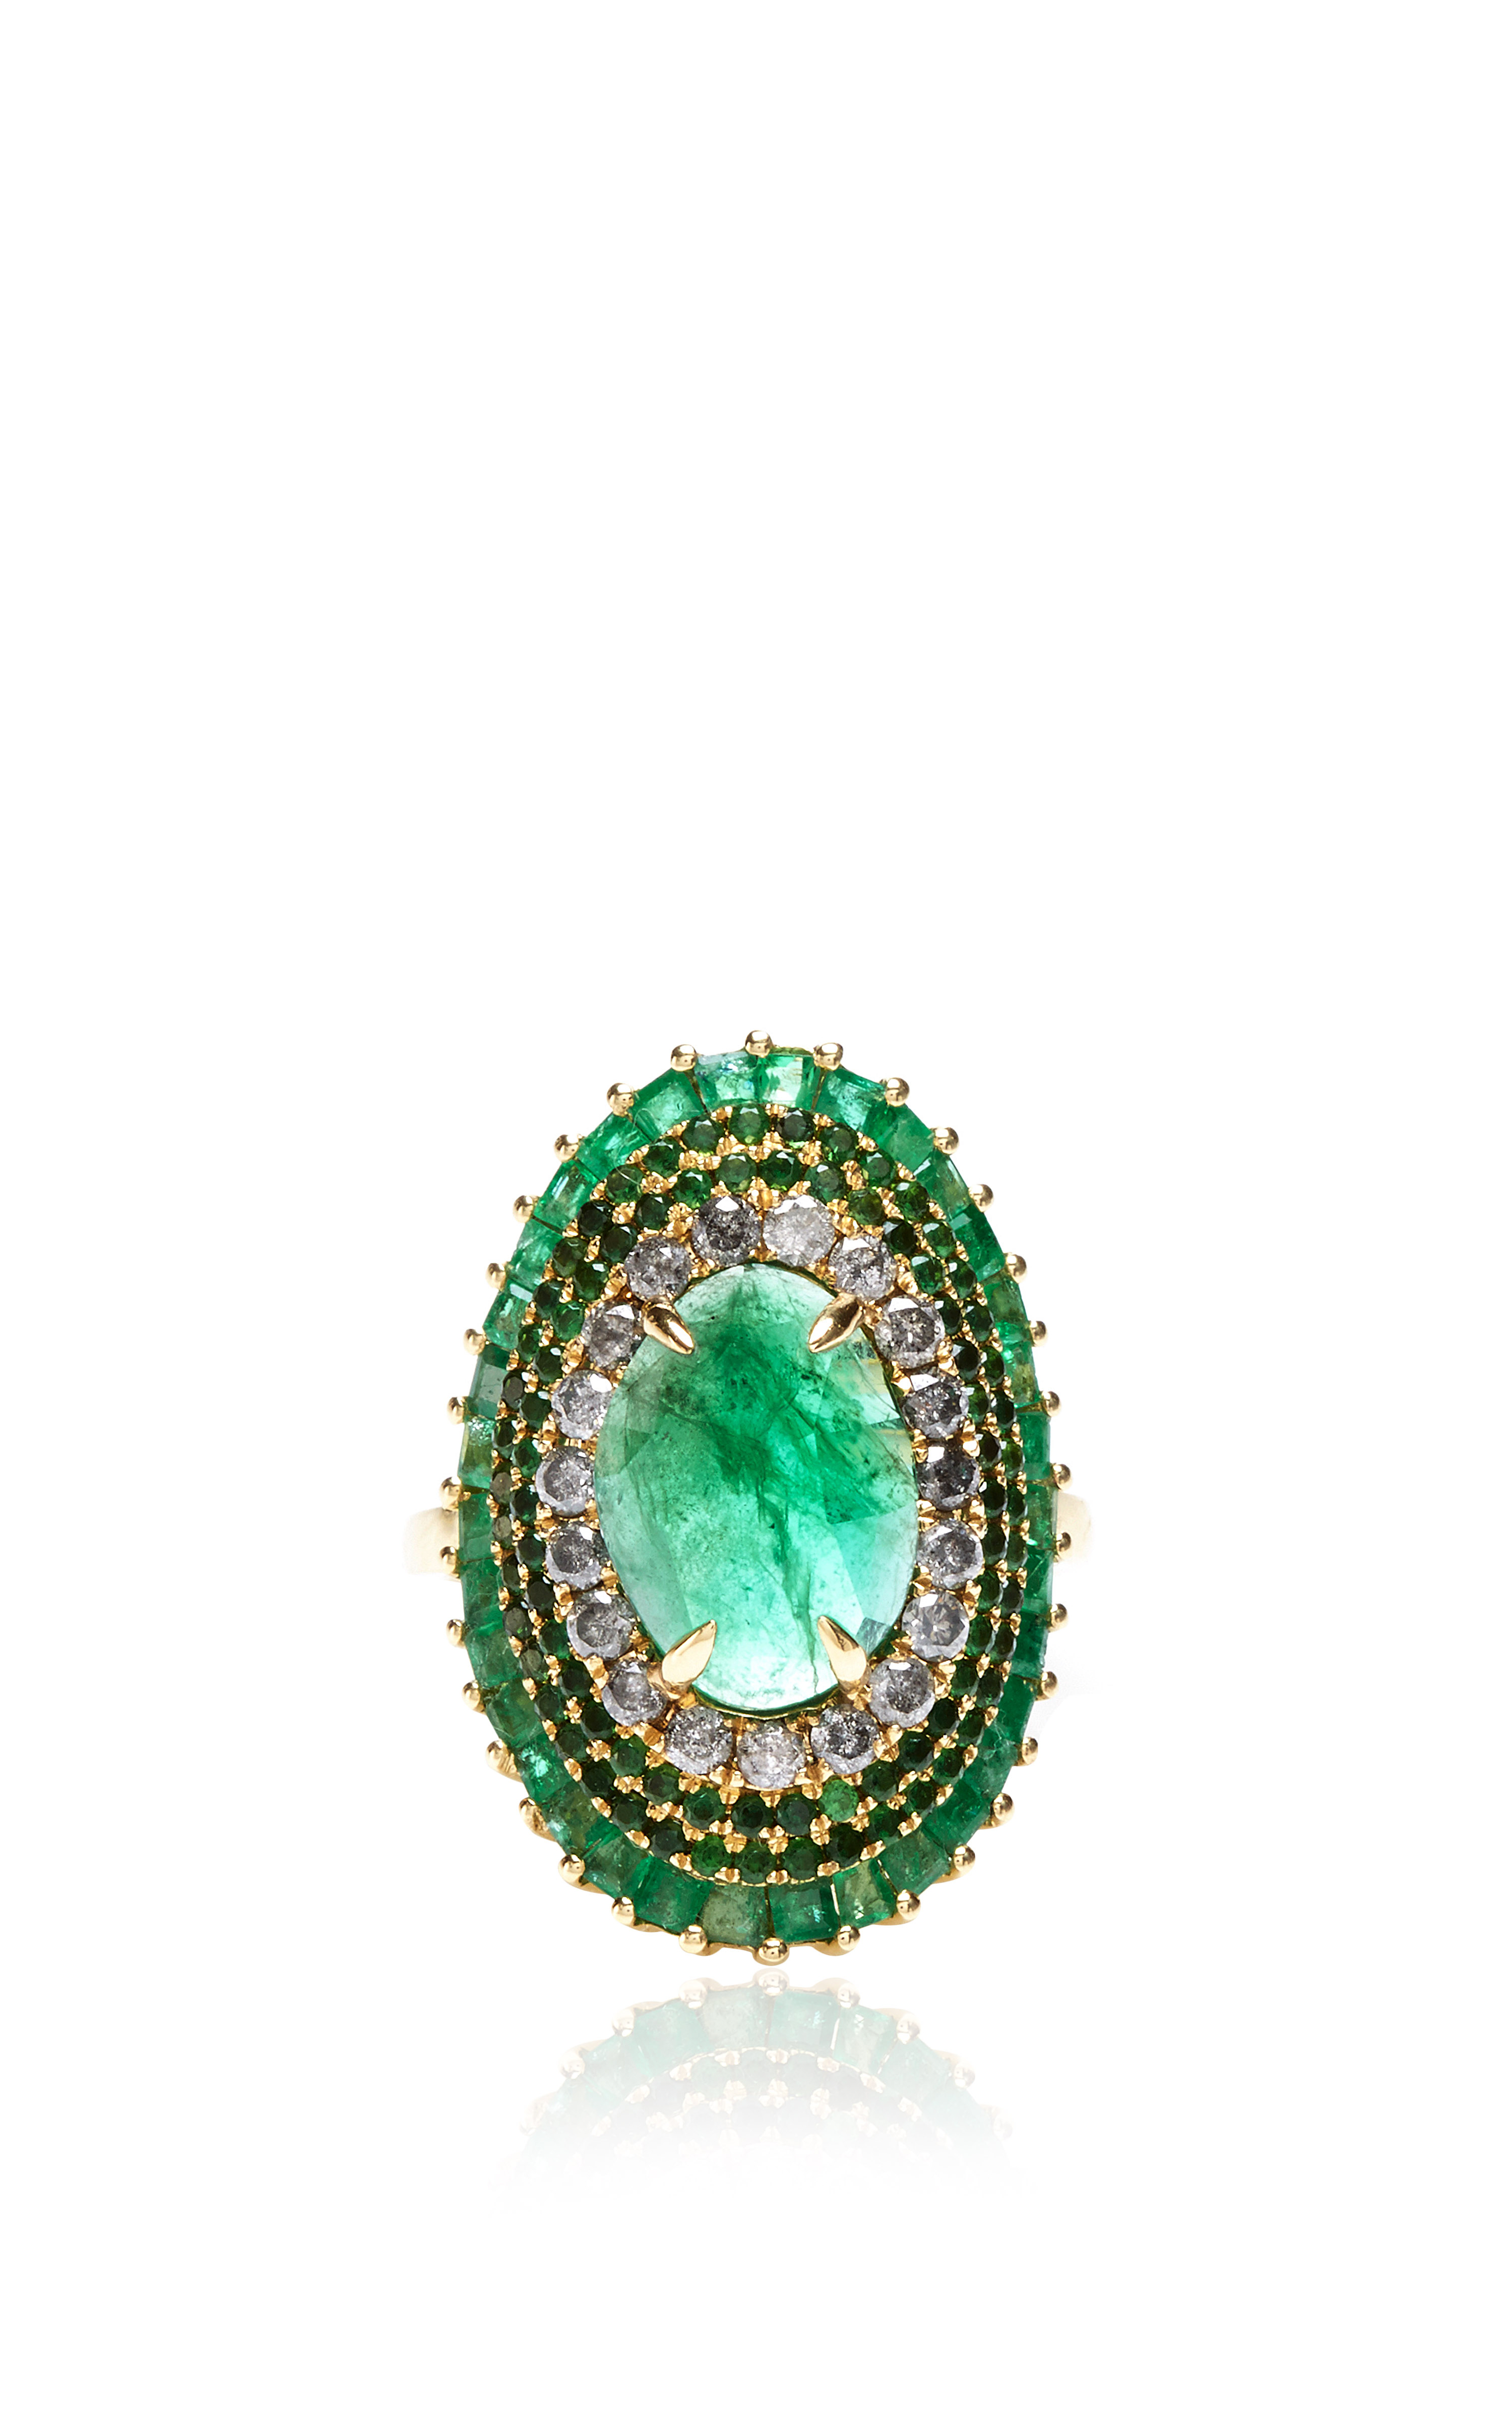 cushion gold tourmaline tw in with cut ring diamonds rings pin green white